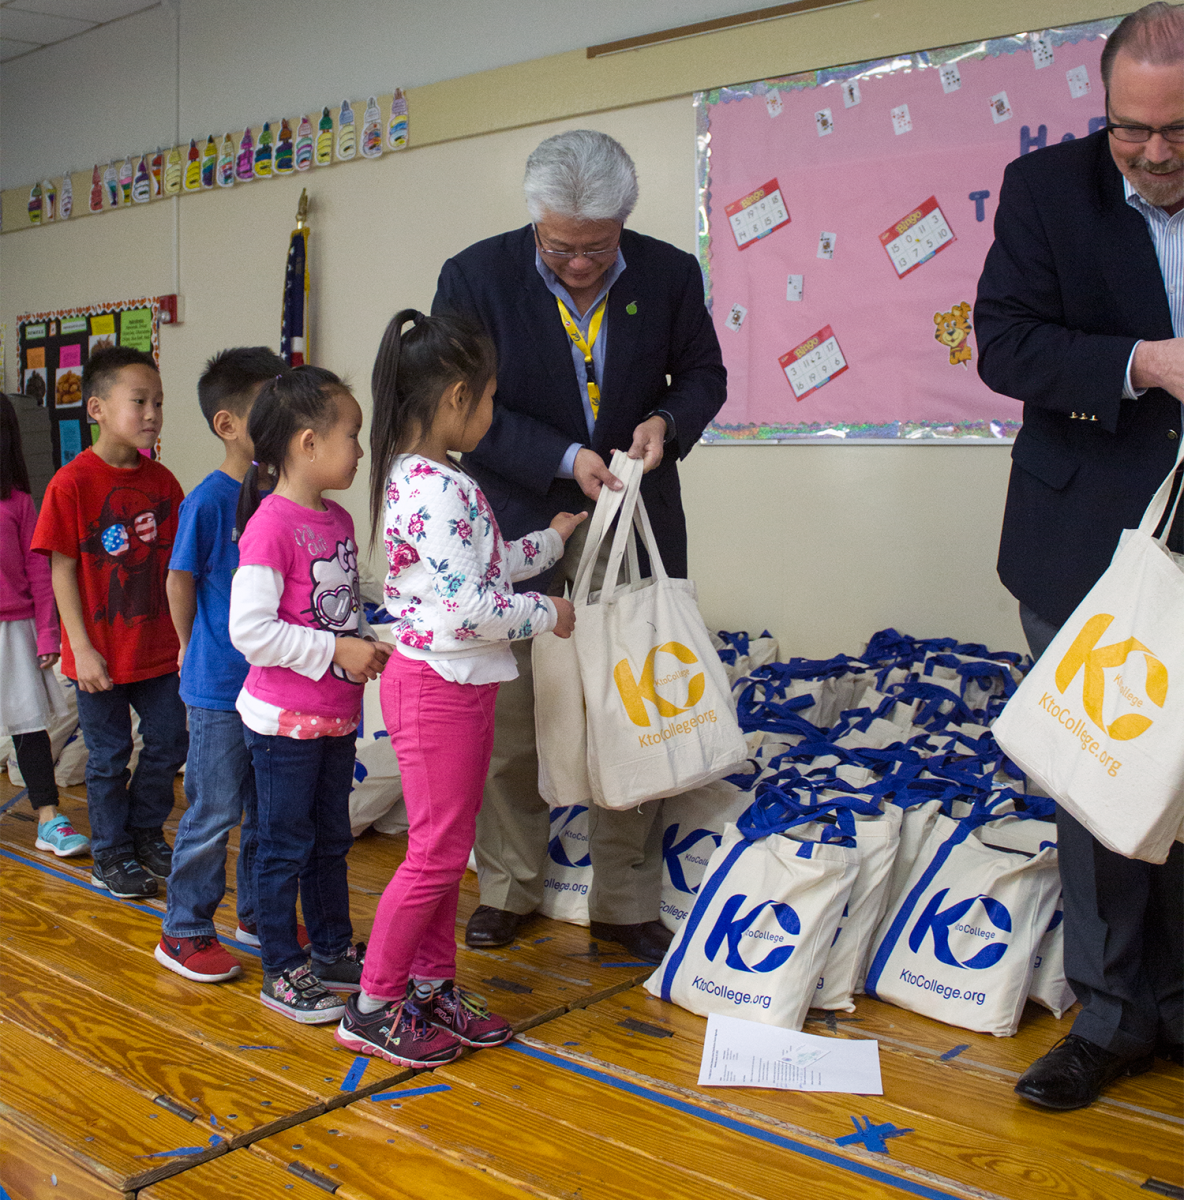 SCUSD Board of Education President Darrel Woo and Sacramento County Supervisor Patrick Kennedy help hand out bags to students